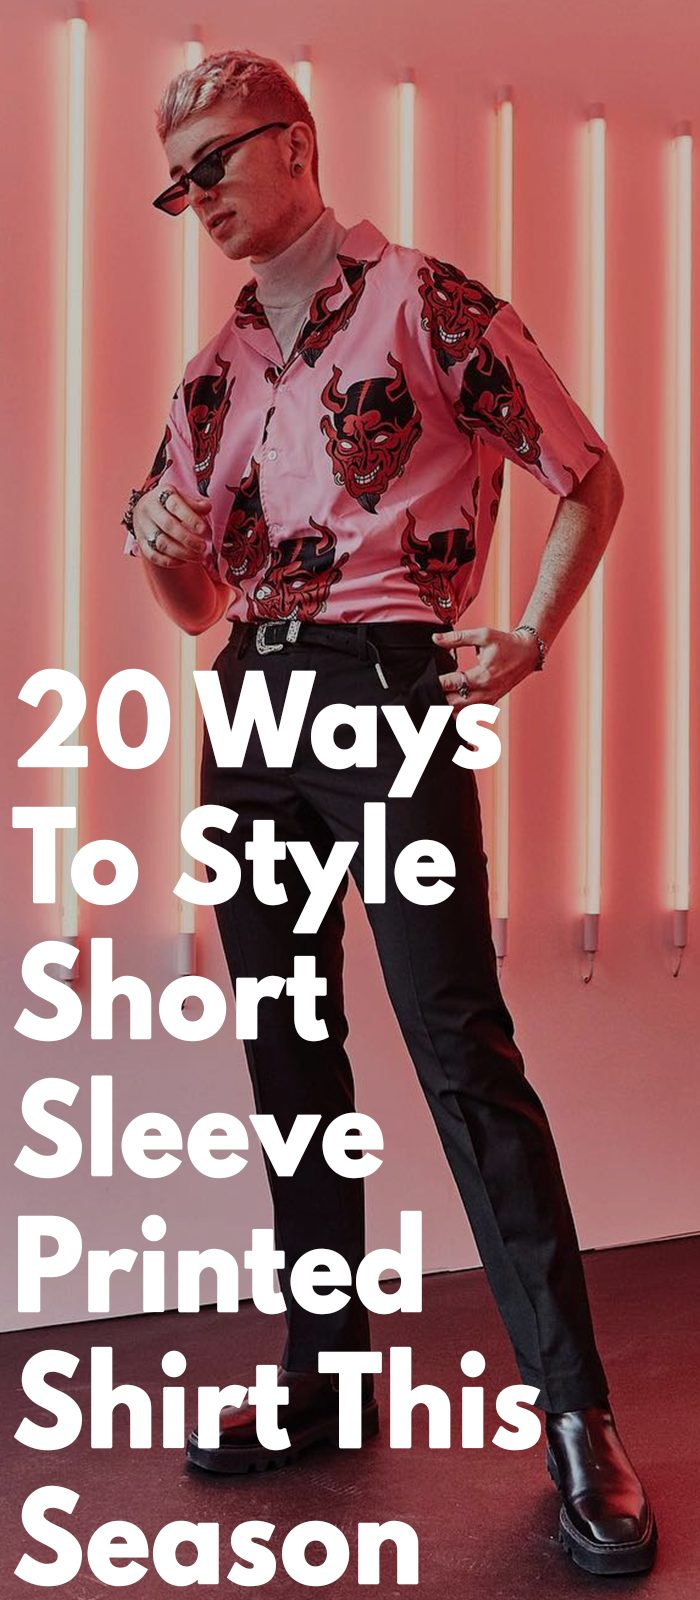 20 Ways To Style Short Sleeve Printed Shirts This Season